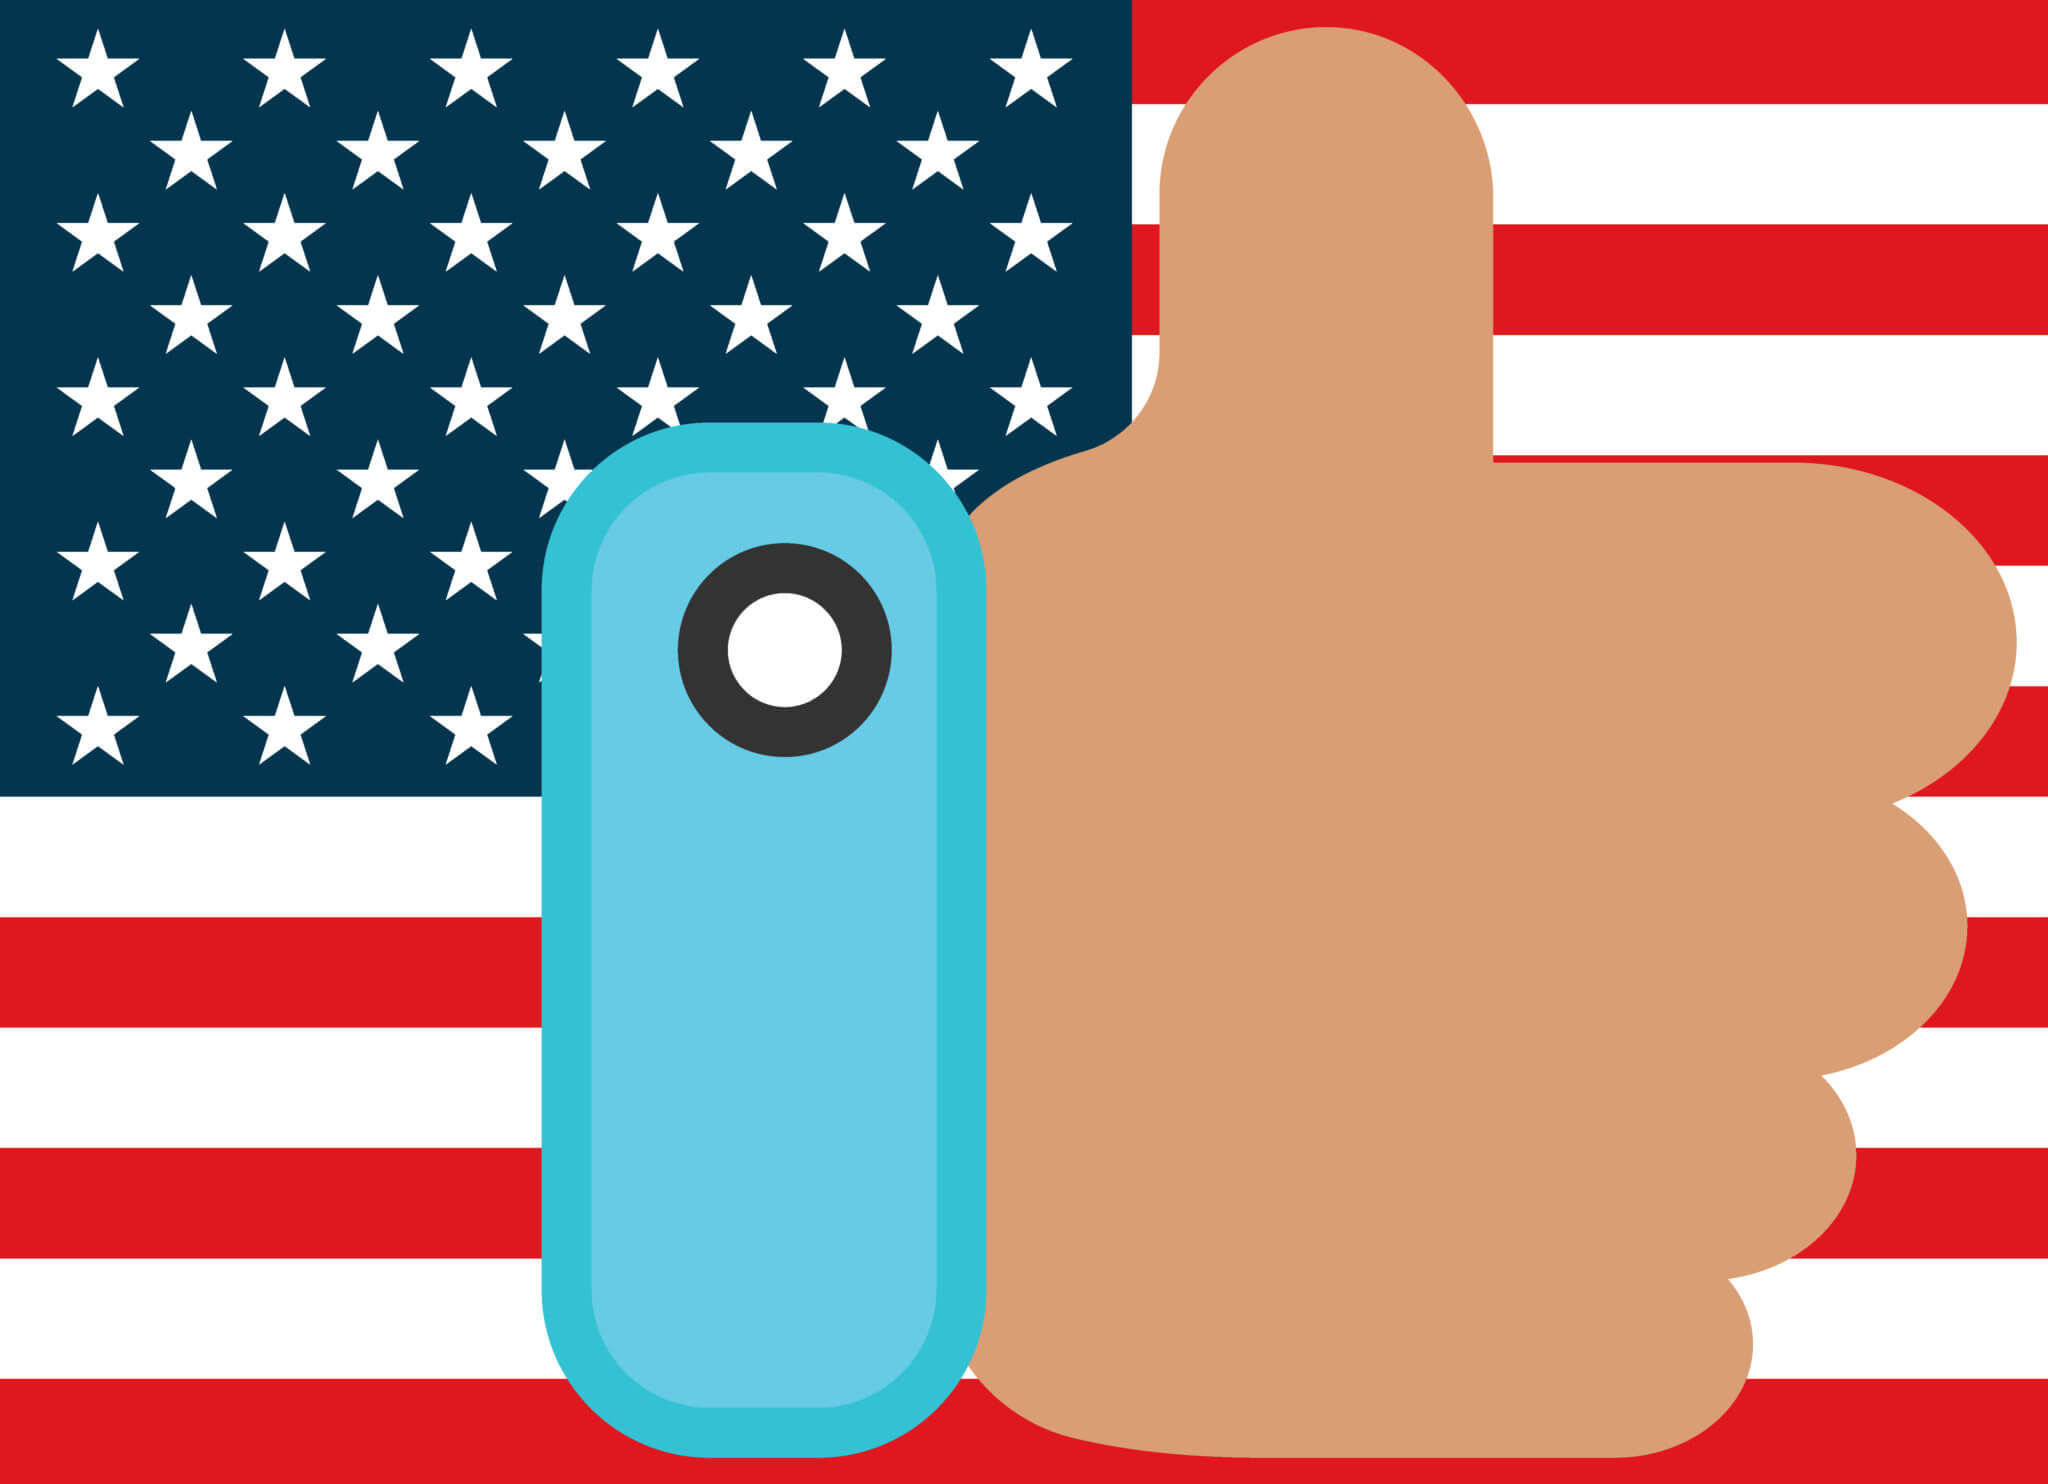 American flag in background with hand in foreground with thumb up